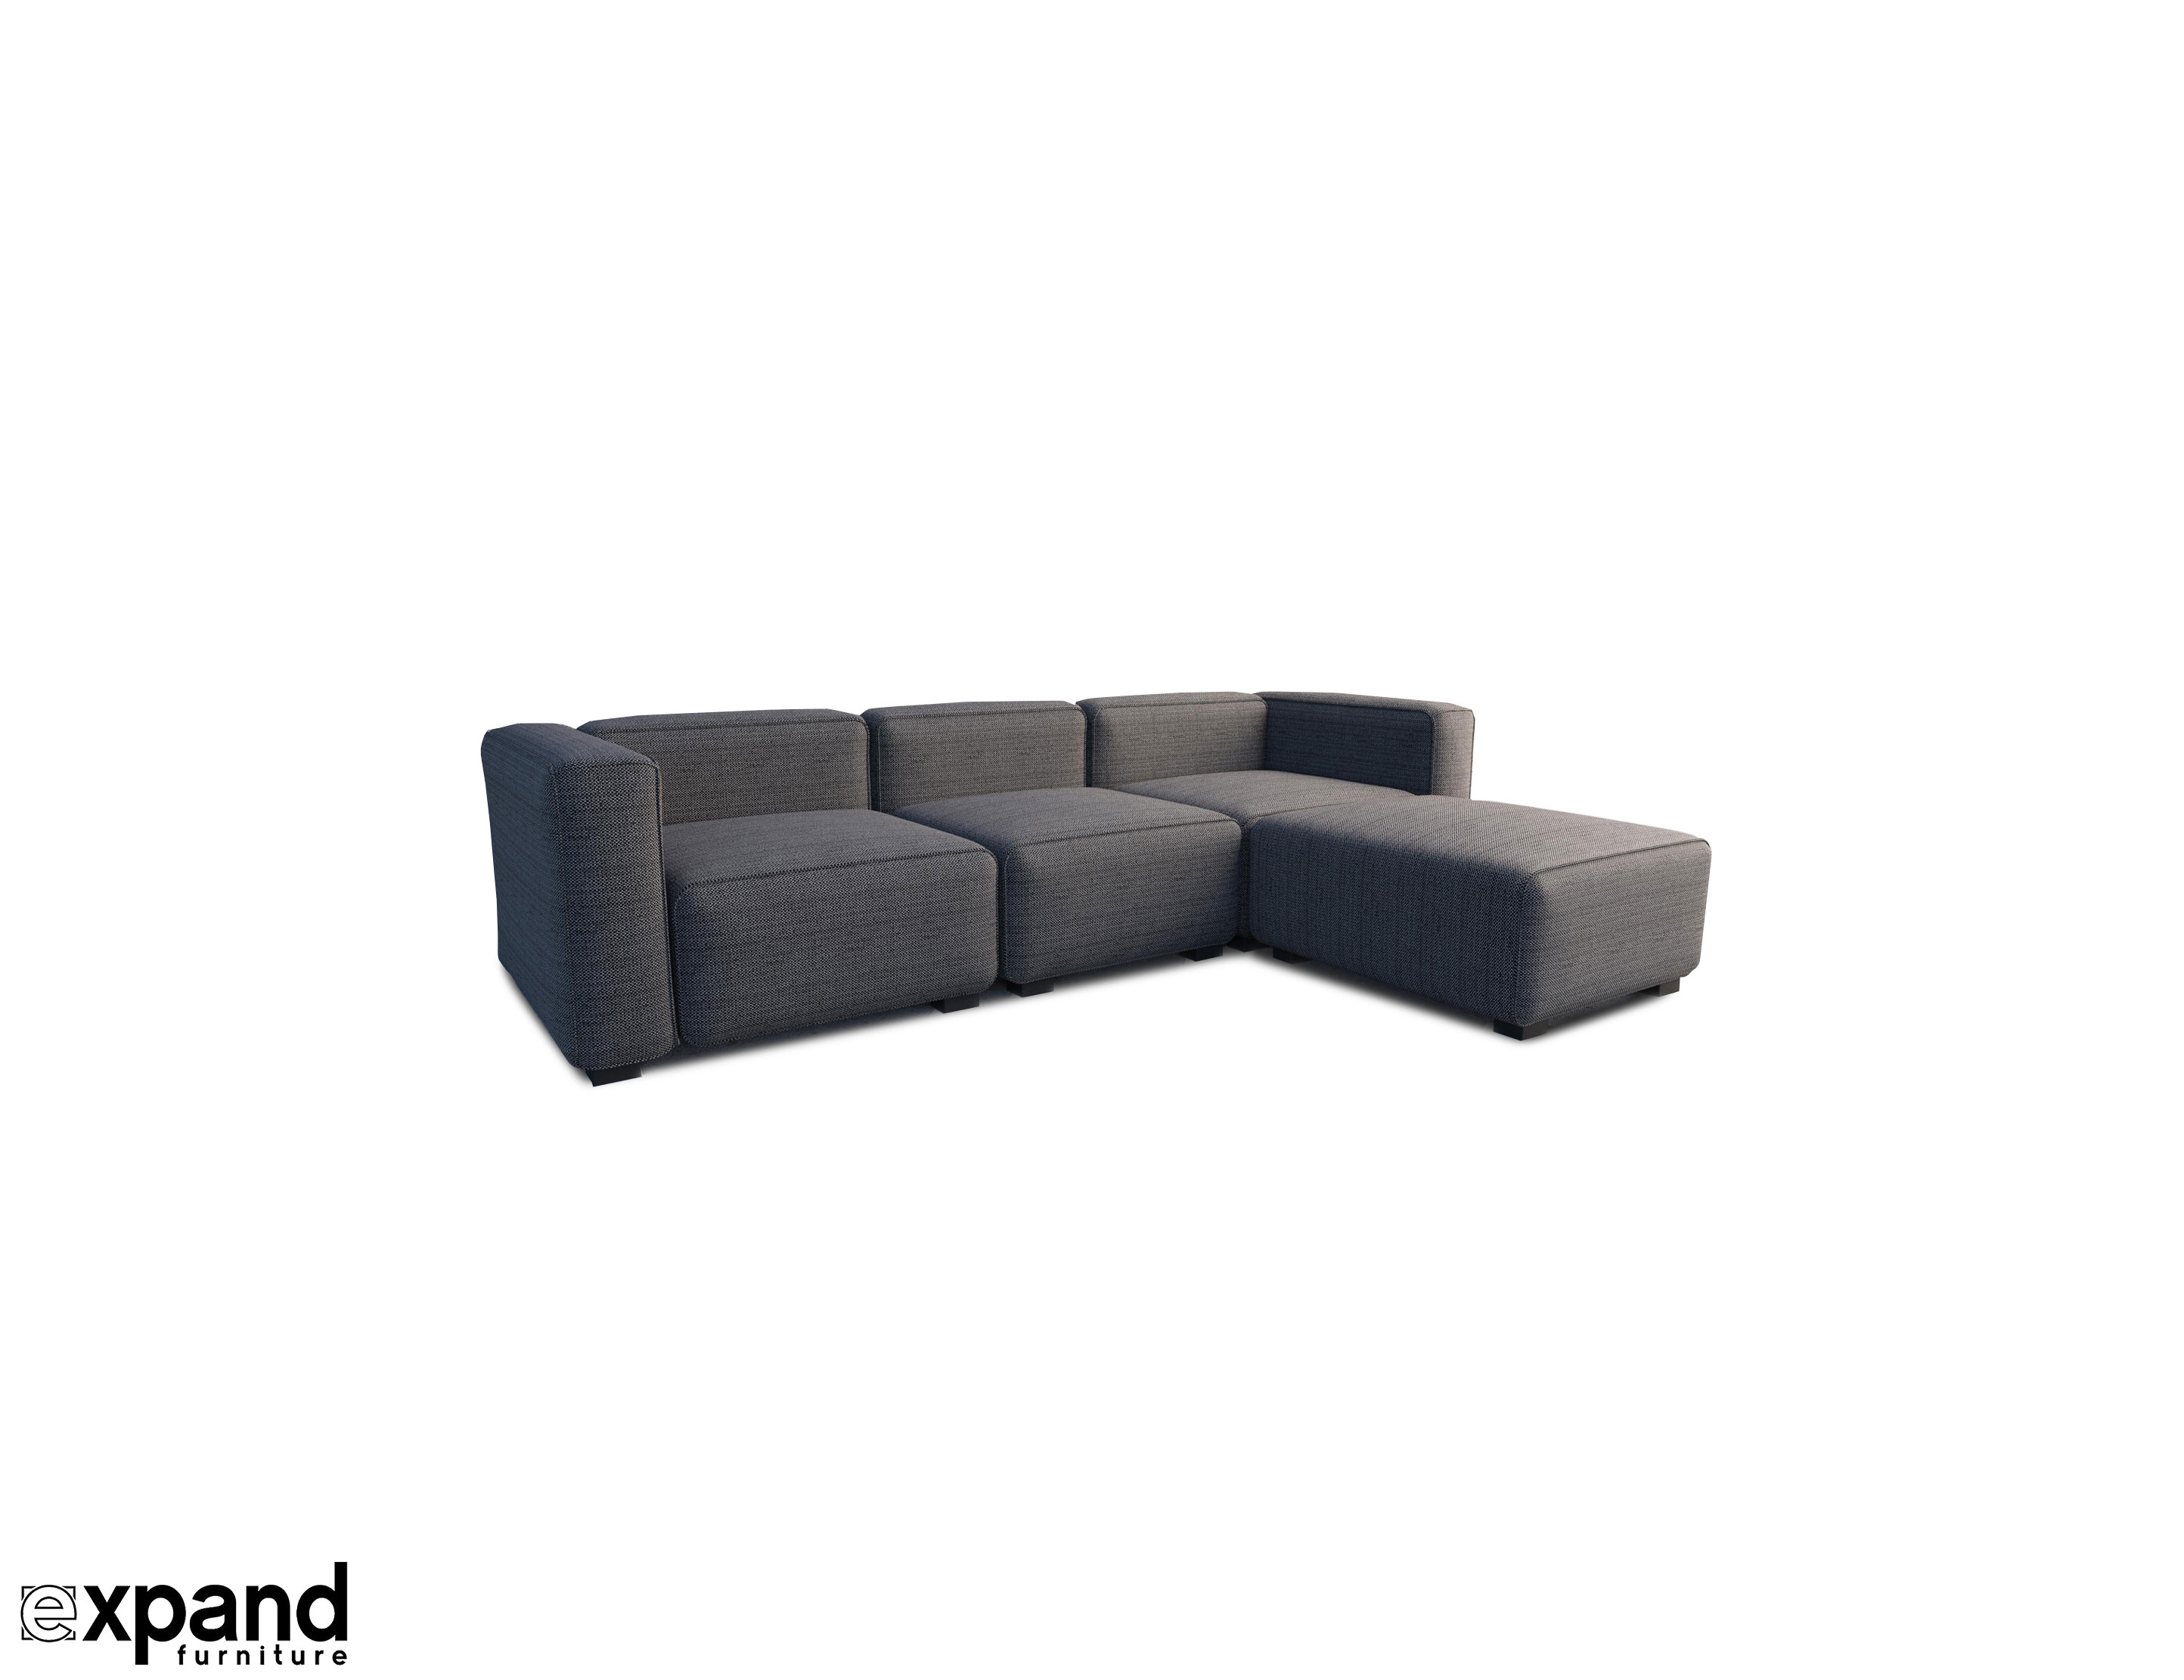 Soft Cube Modern Modular Sofa Set Expand Furniture